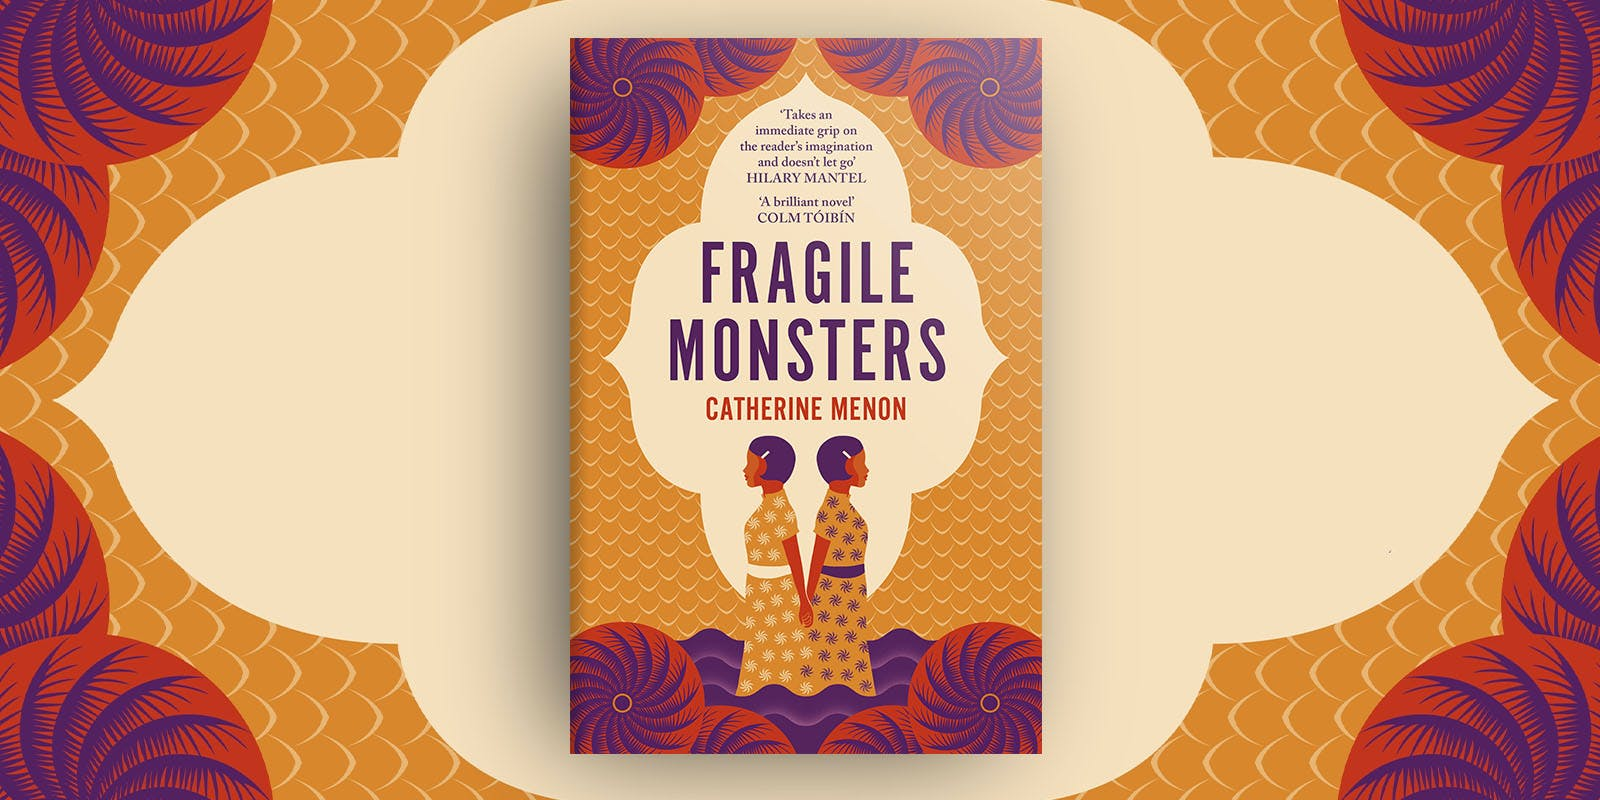 Fragile Monsters book club notes